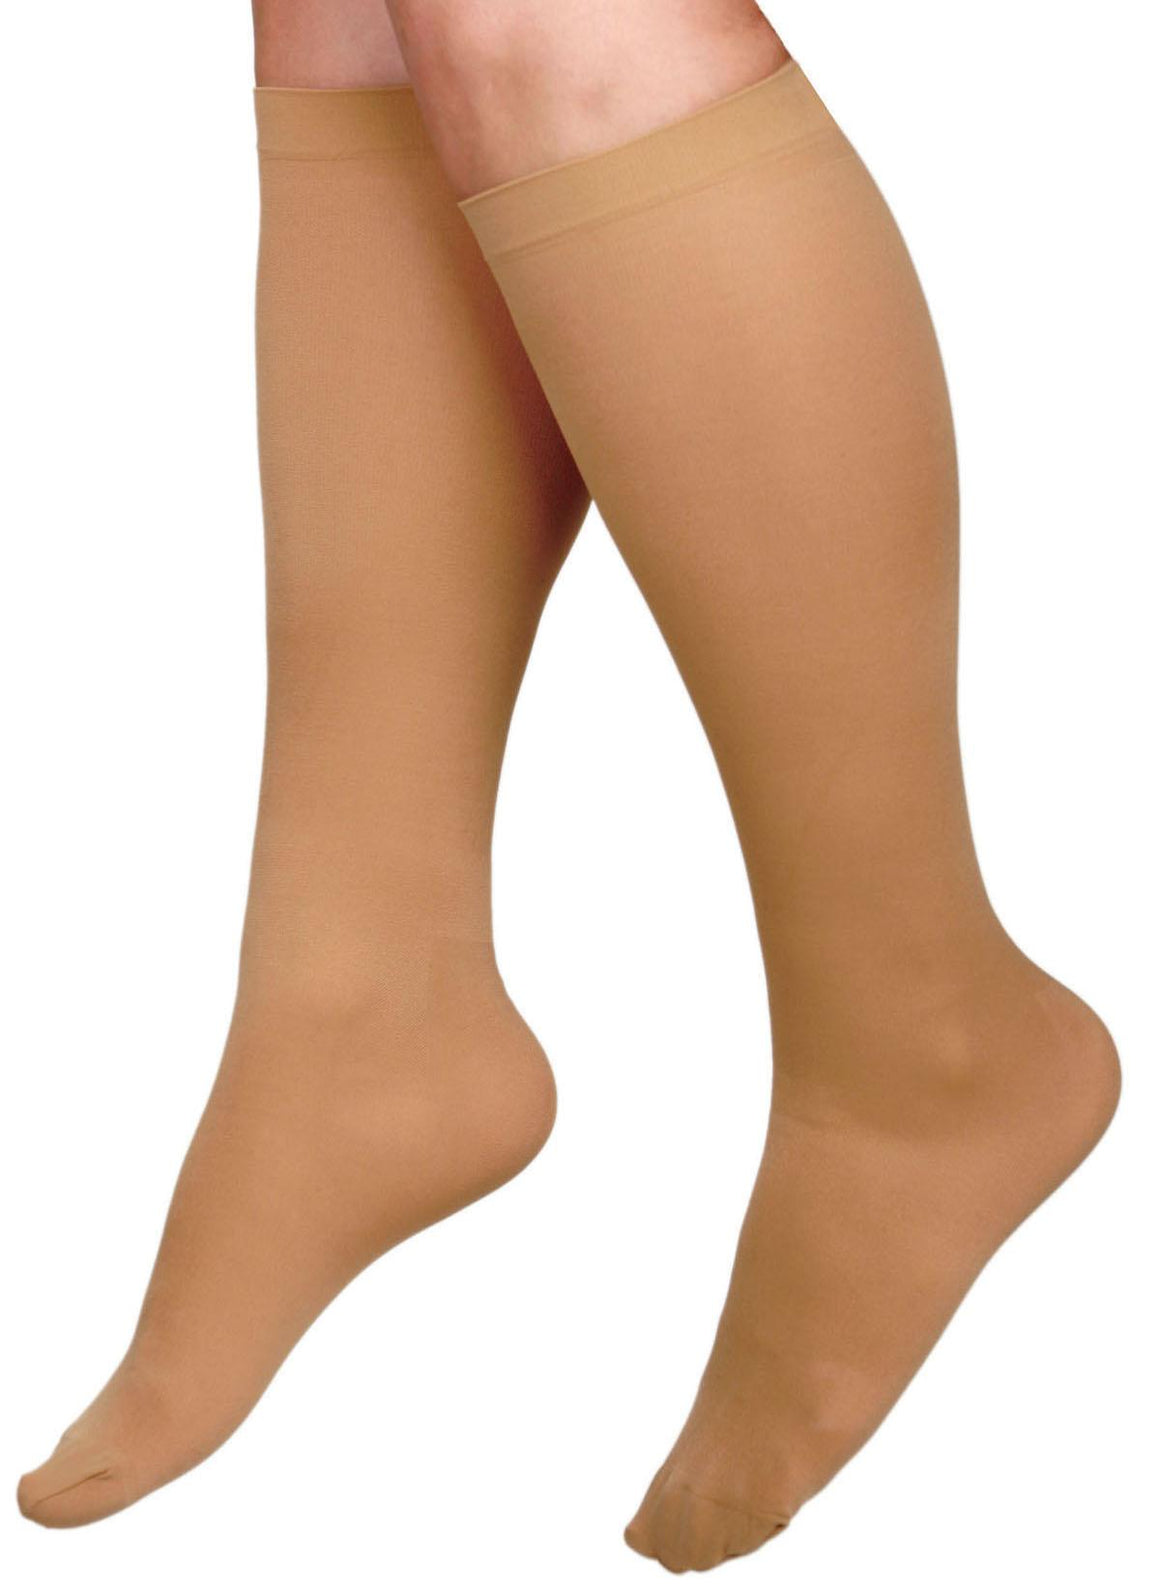 CURAD Knee-High Compression Hosiery, Beige, G, Regular, Each